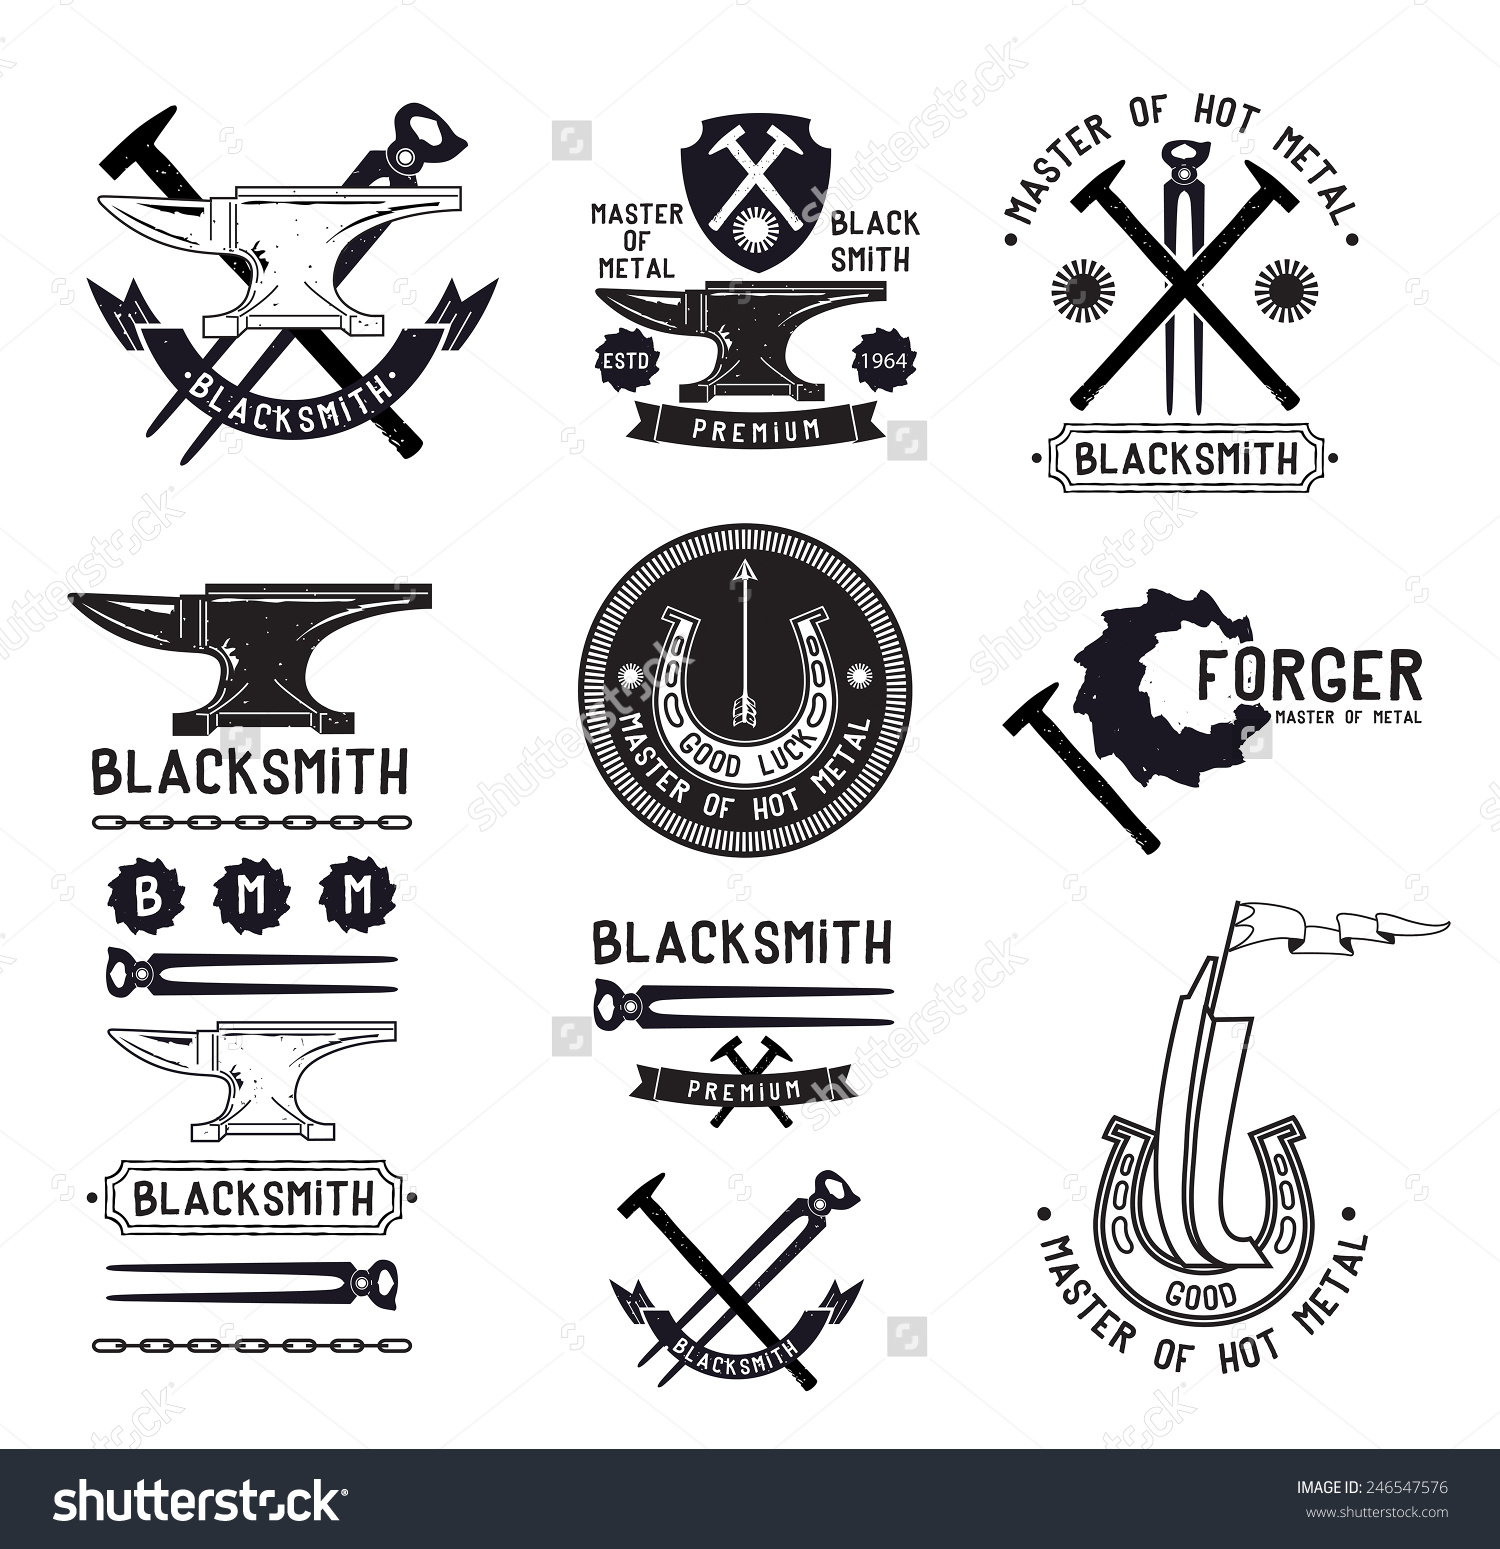 Blacksmith clipart logo By on S Discover more